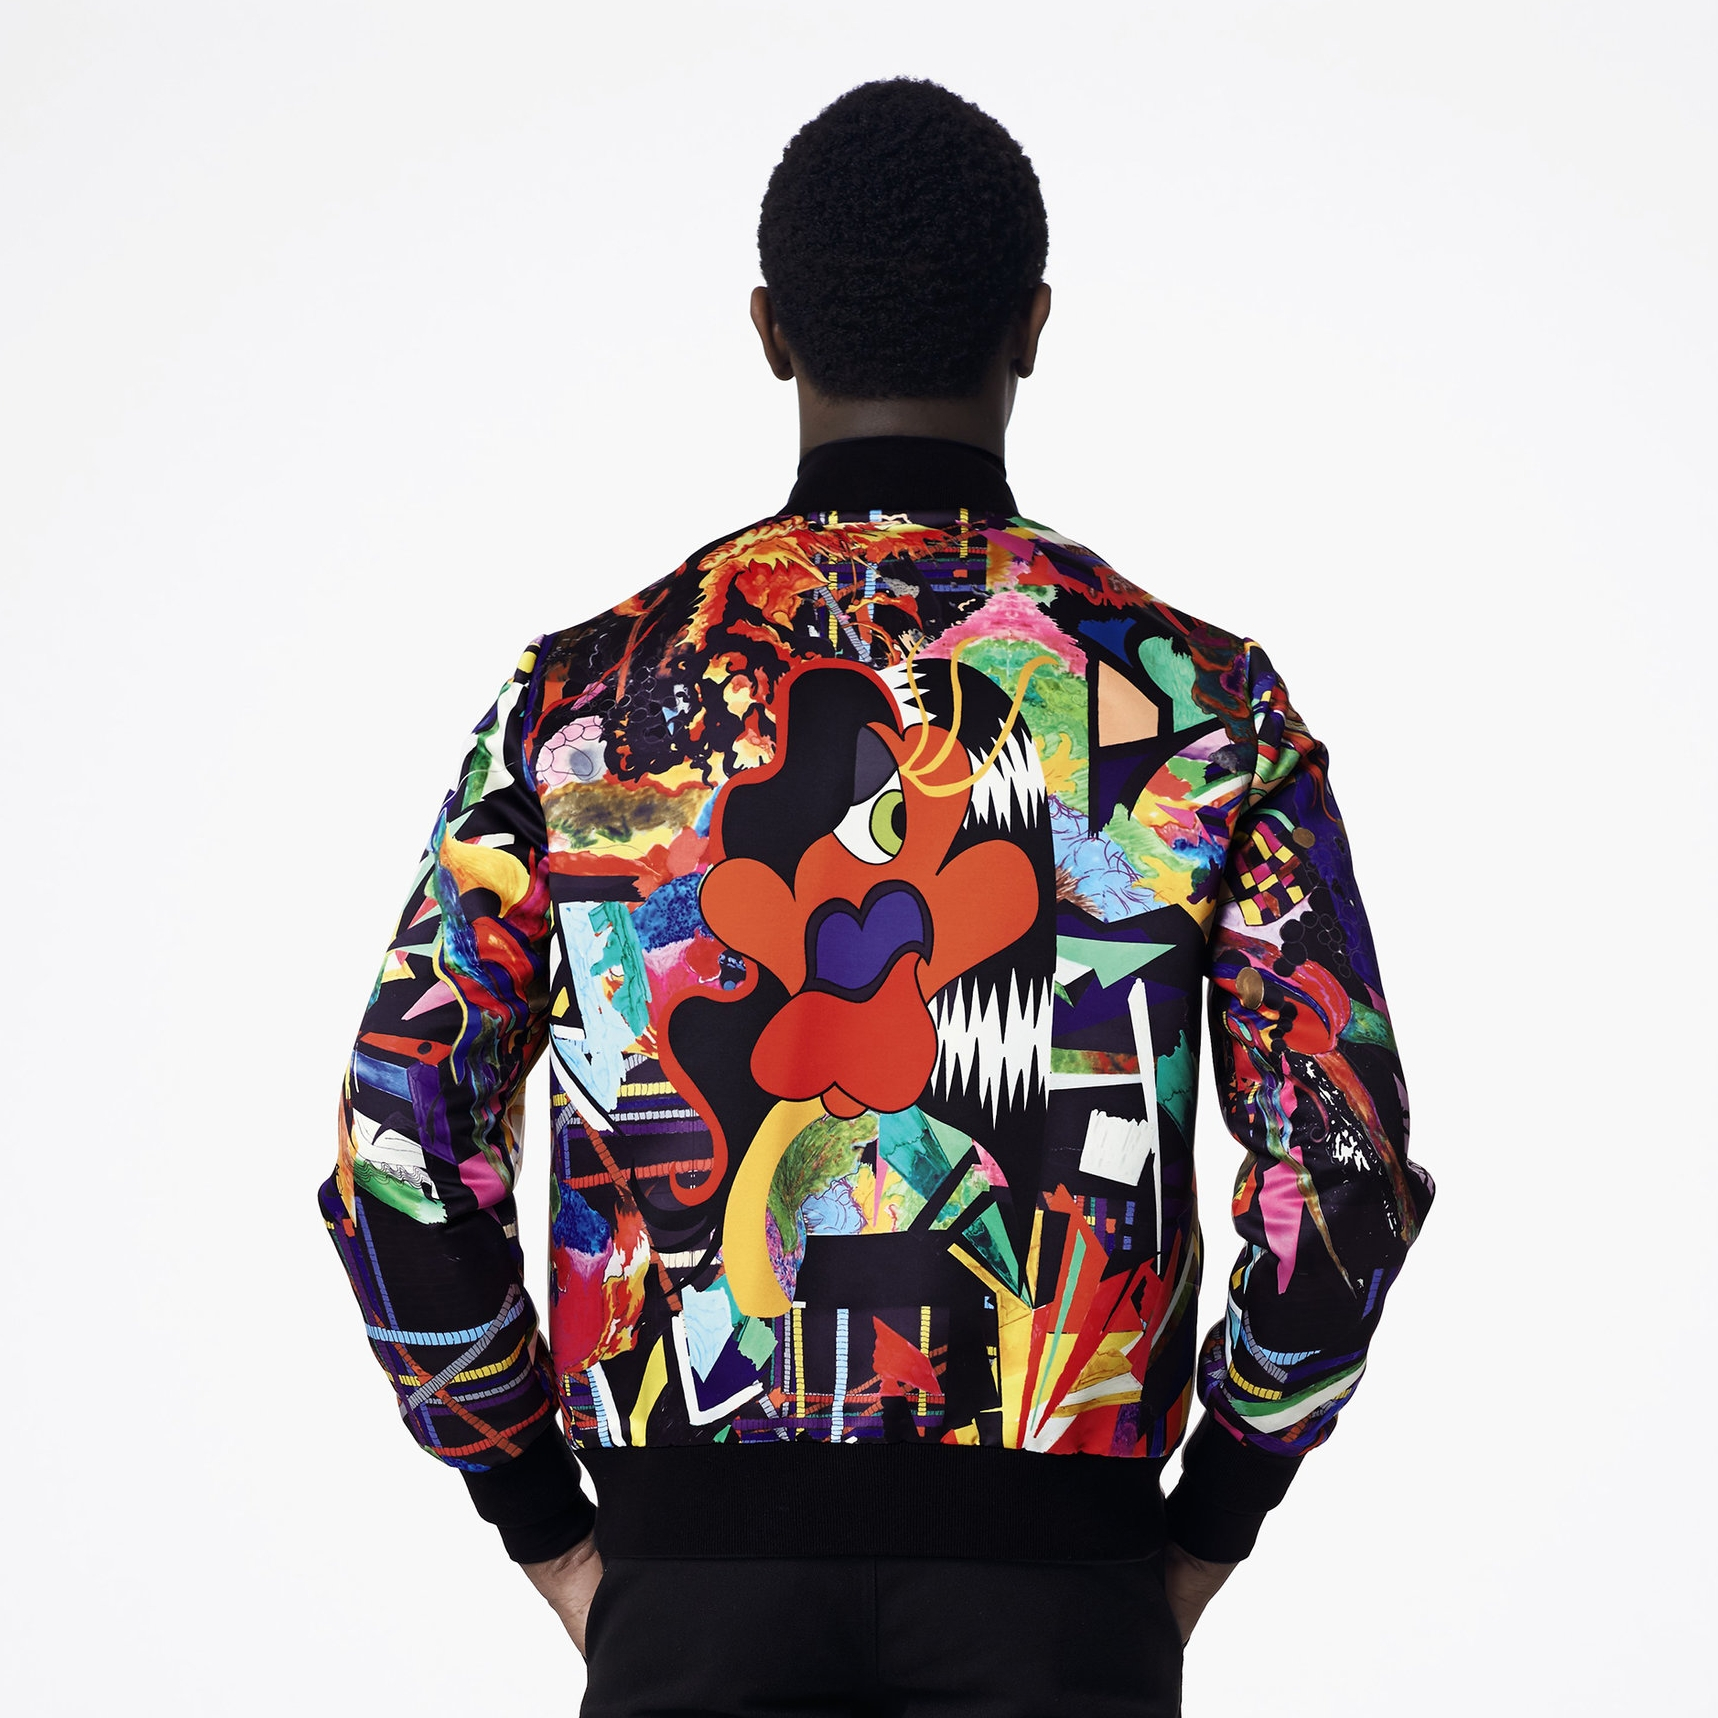 Marc by Marc Jacobs x assume vivid astro focus -